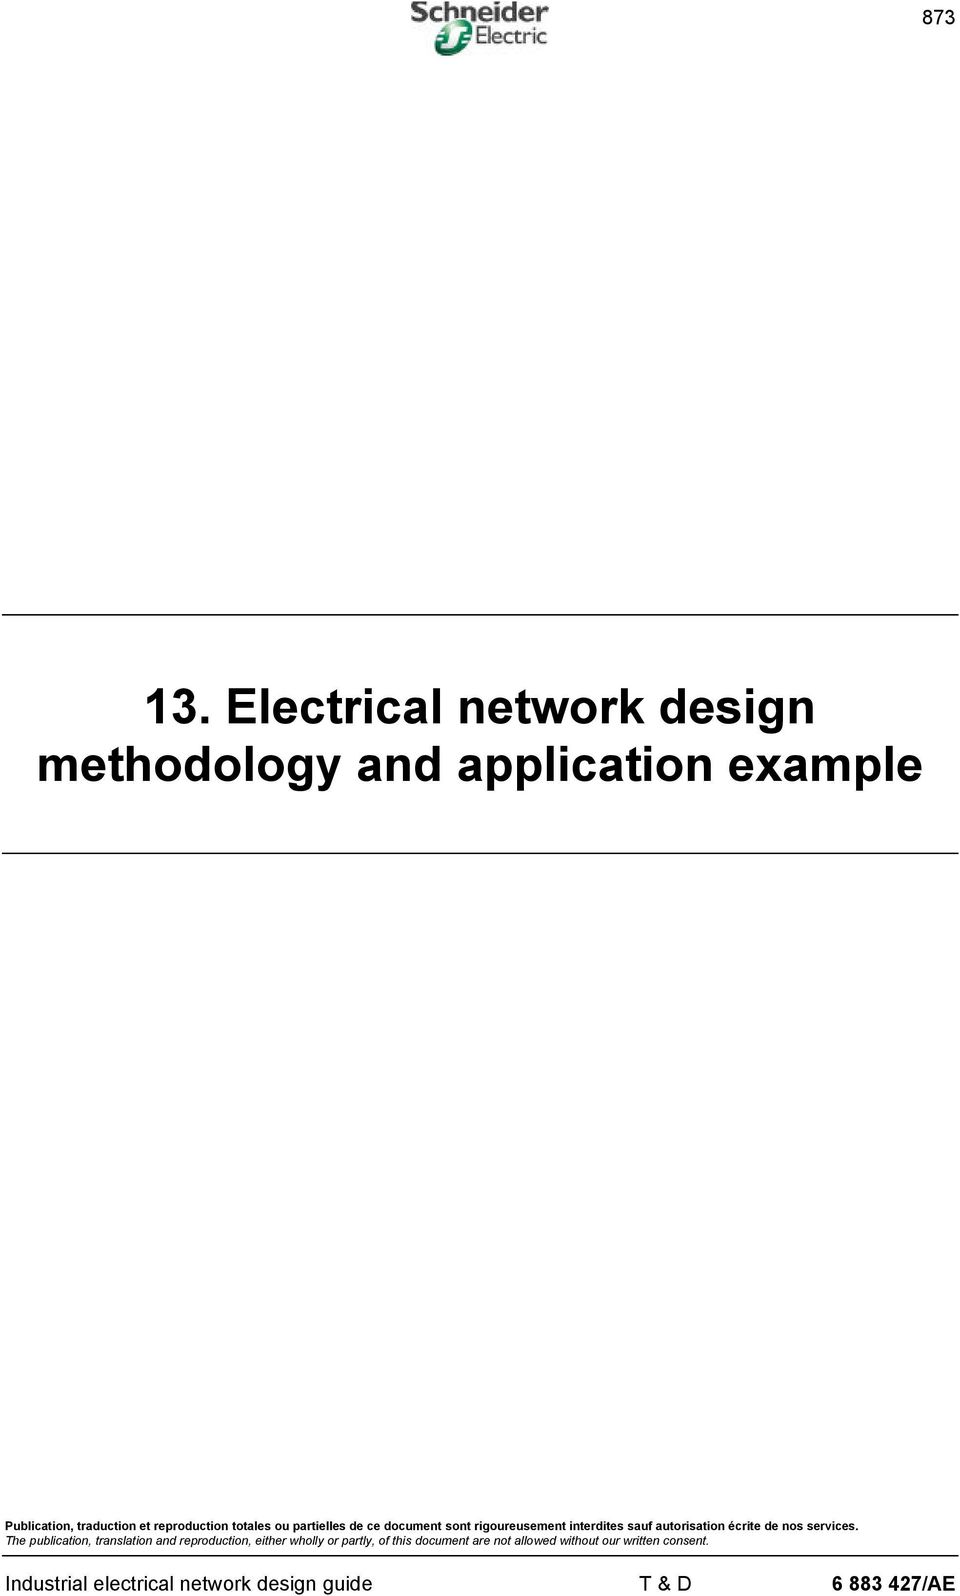 Schneider Electric Industrial Electrical Network Design Guide 84 Chevy Corvette Wiring Diagram Free Download